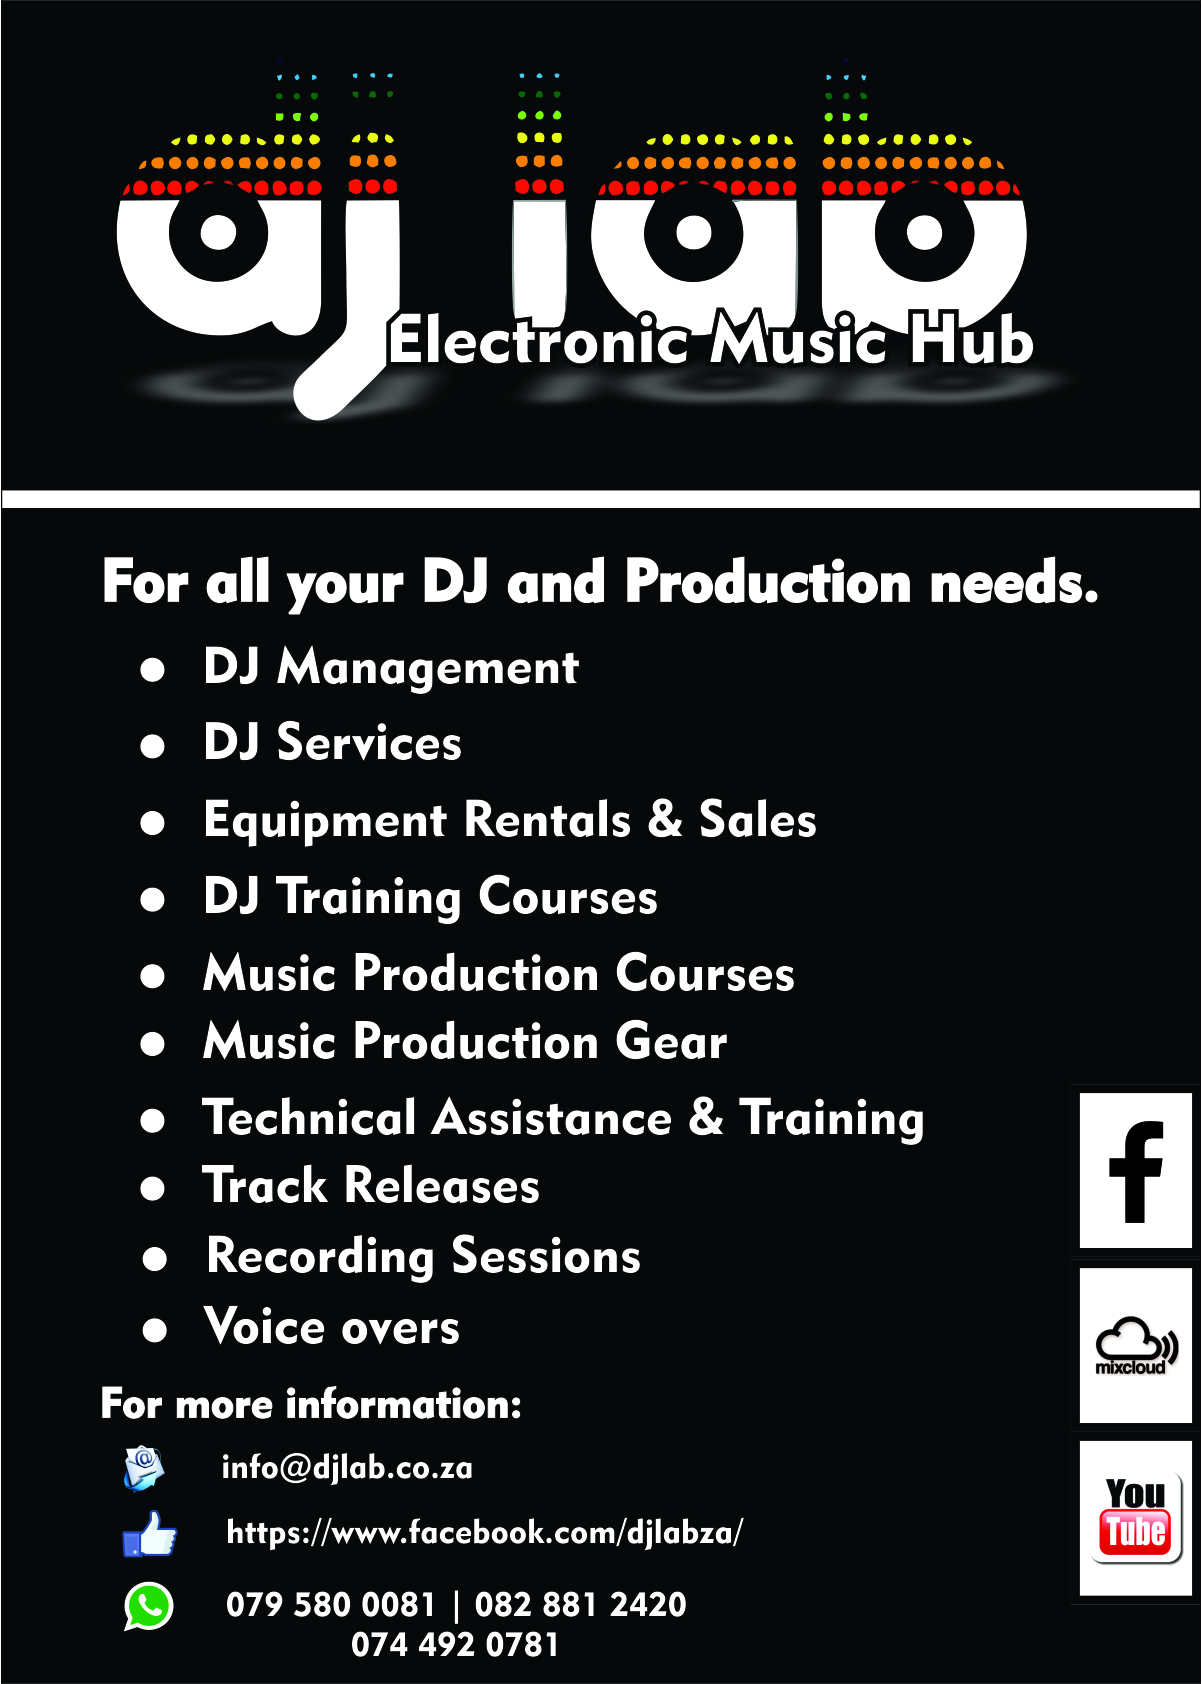 DJ, Music Production, Services, Training, School, Academy, Sales